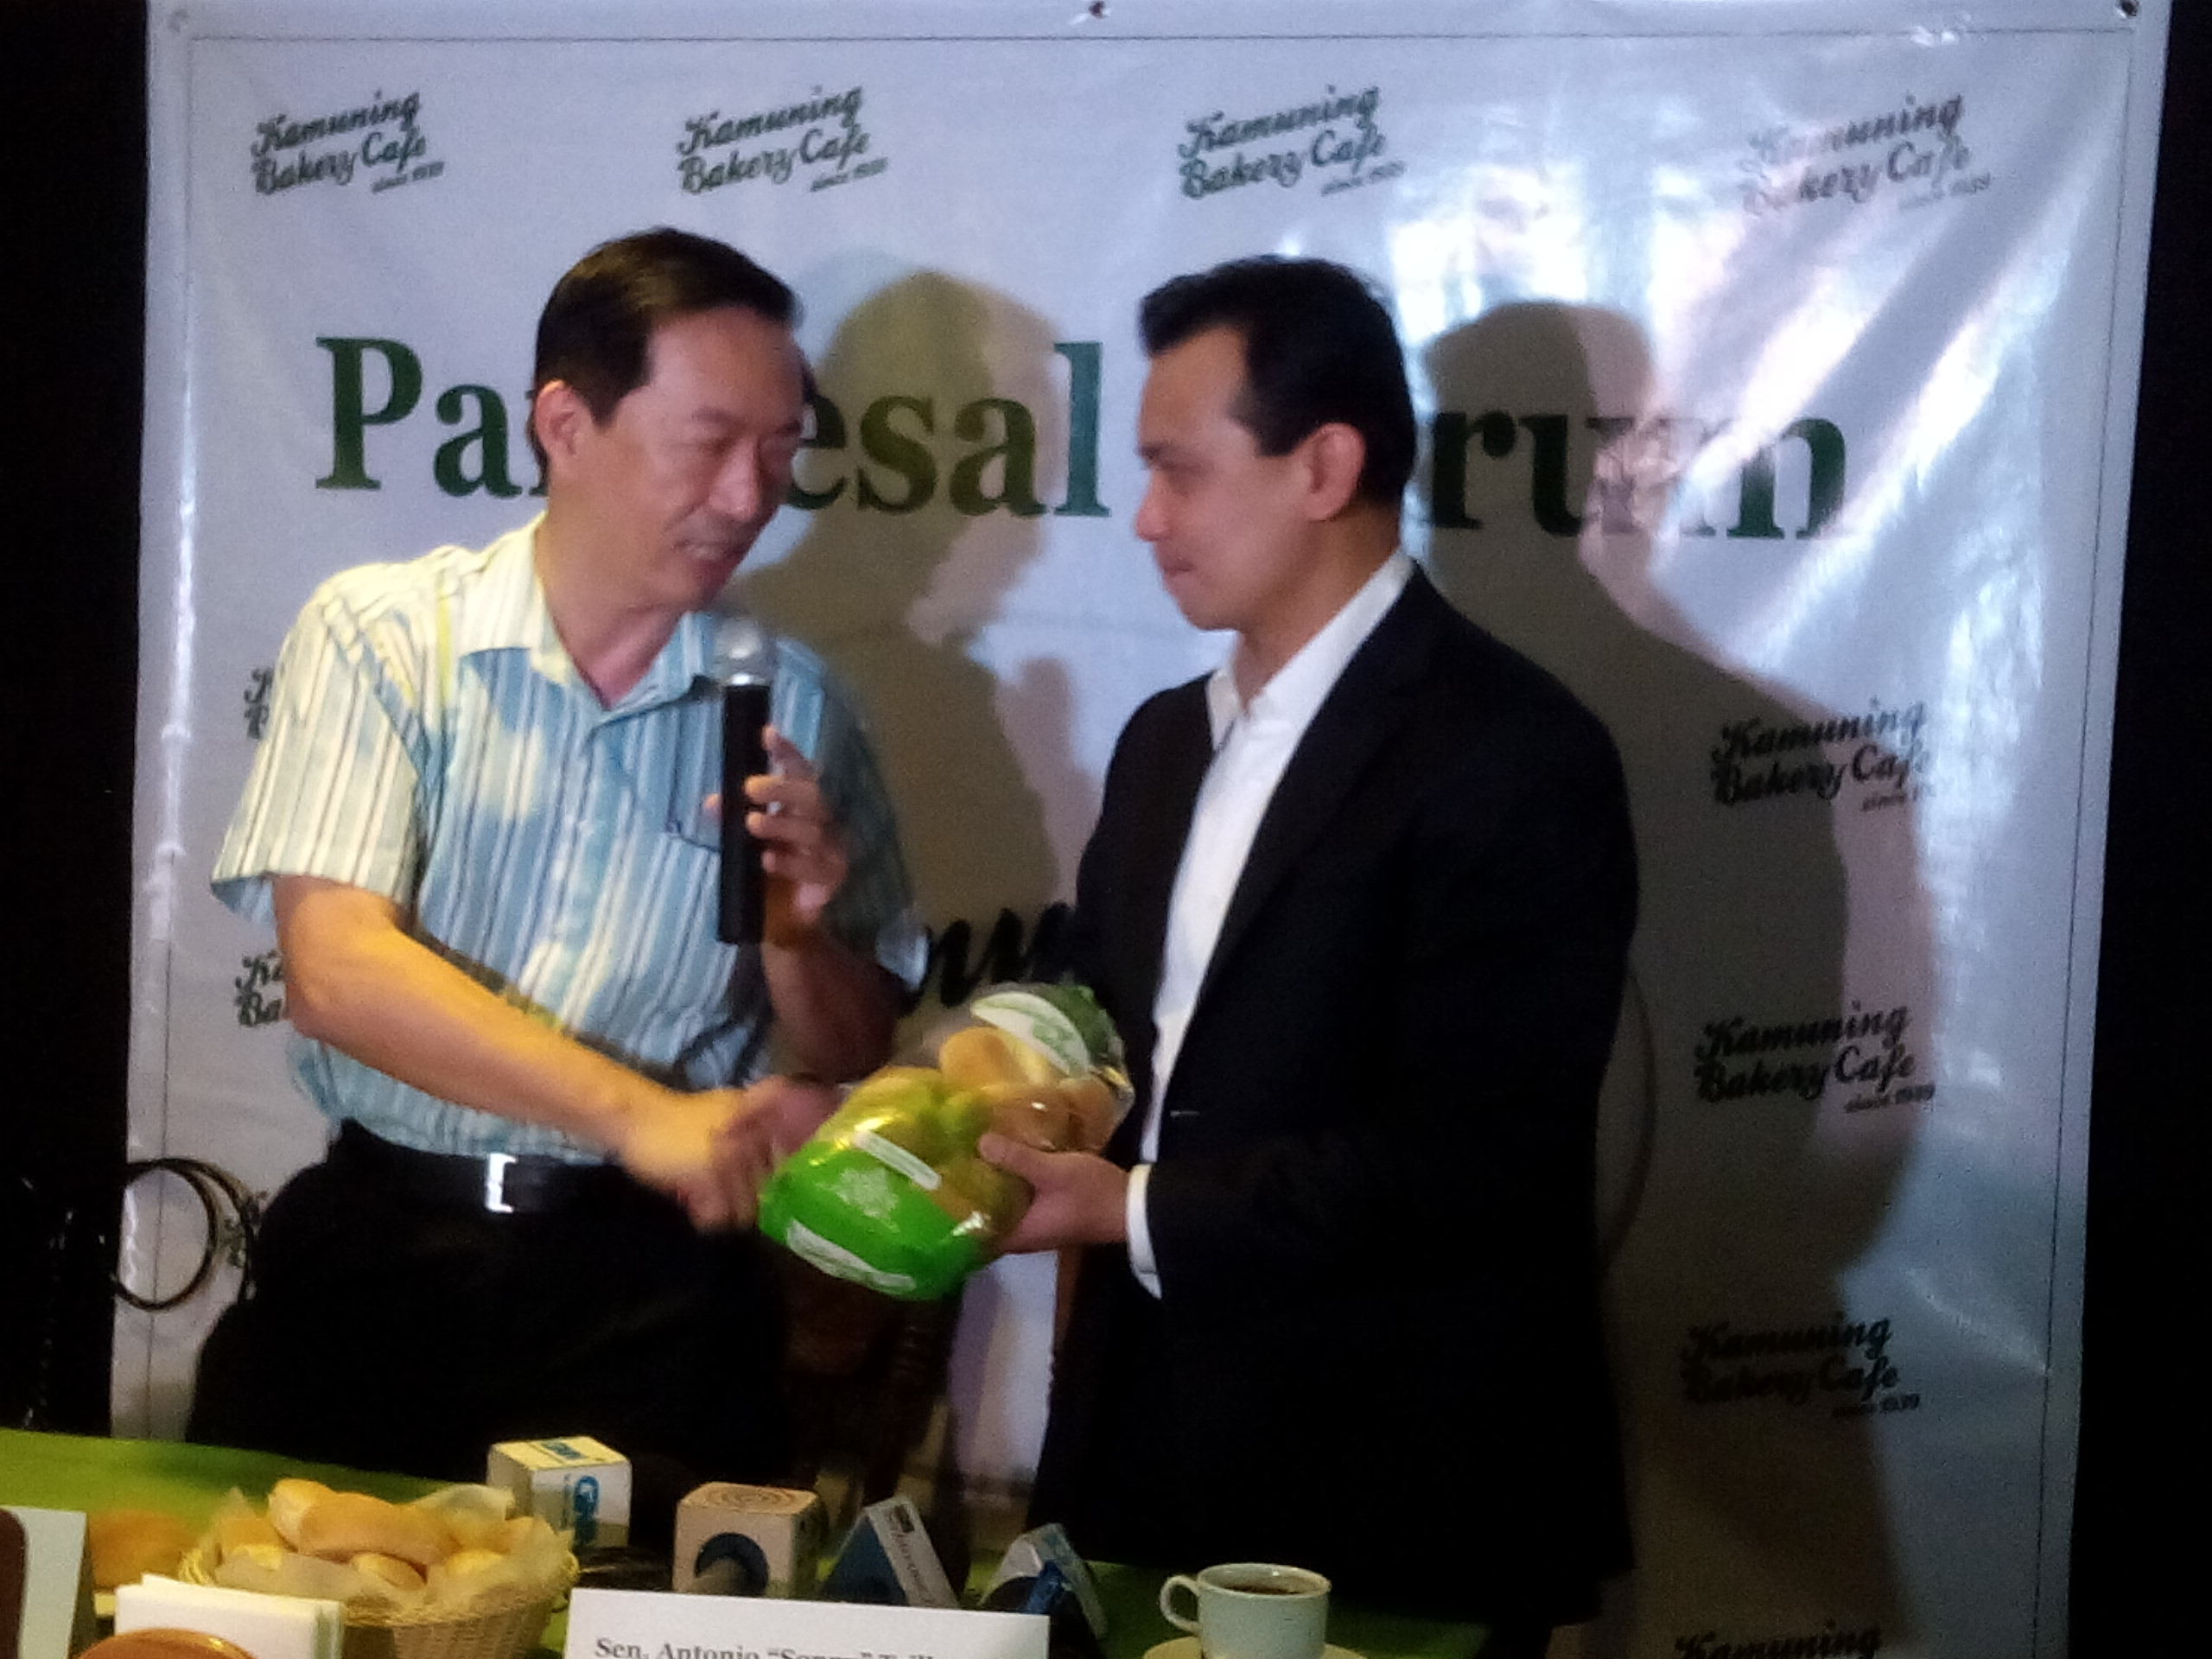 Wilson Lee Flores awards Pandesal to Senator Trillanes